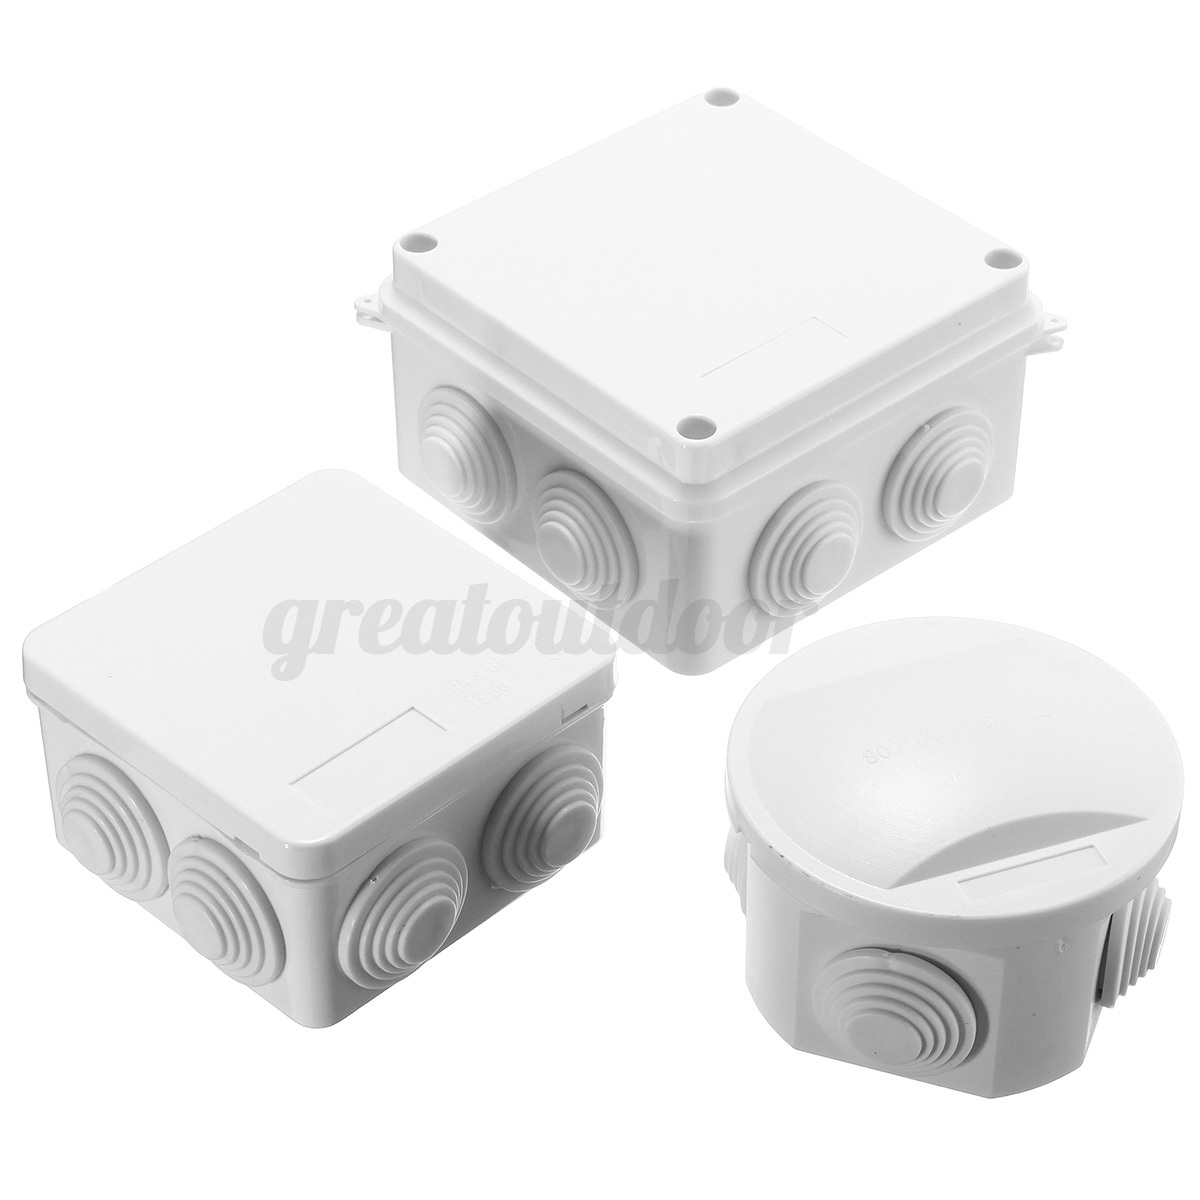 Waterproof Ip65 Terminal Junction Project Box Outdoor Electrical Enclosure Case